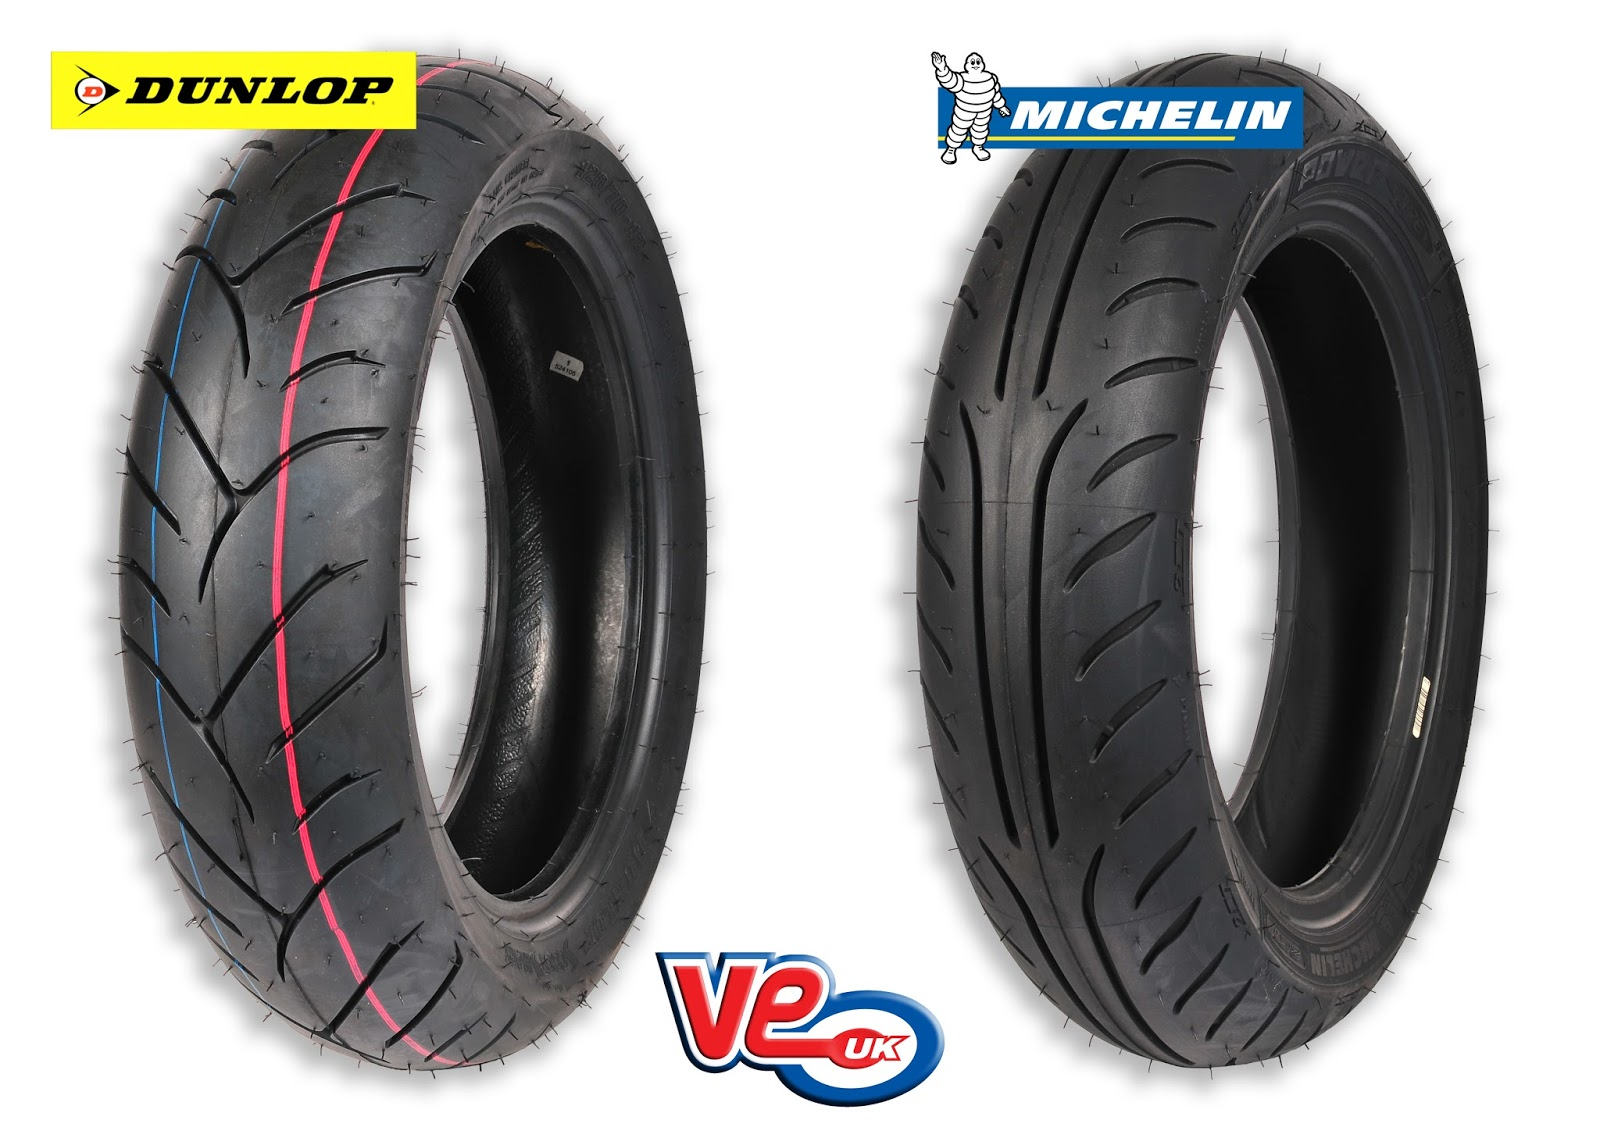 110-70x12 Tyres from VE (UK)